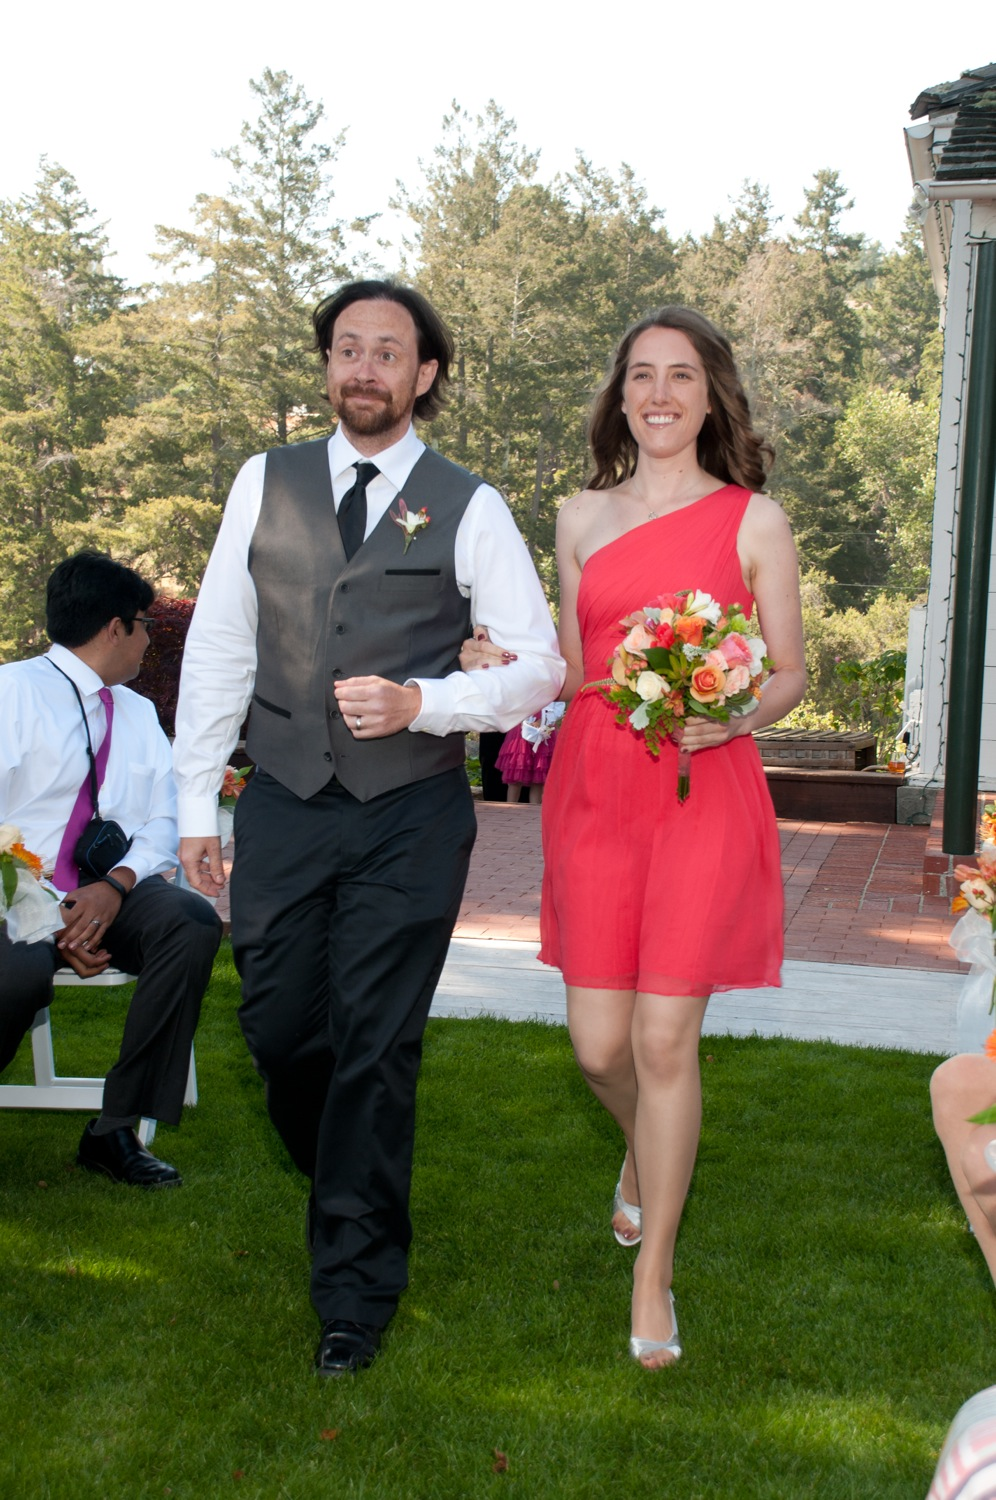 James, Jerram's best friend, and Christine, Elizabeth's sister, walk down the aisle.